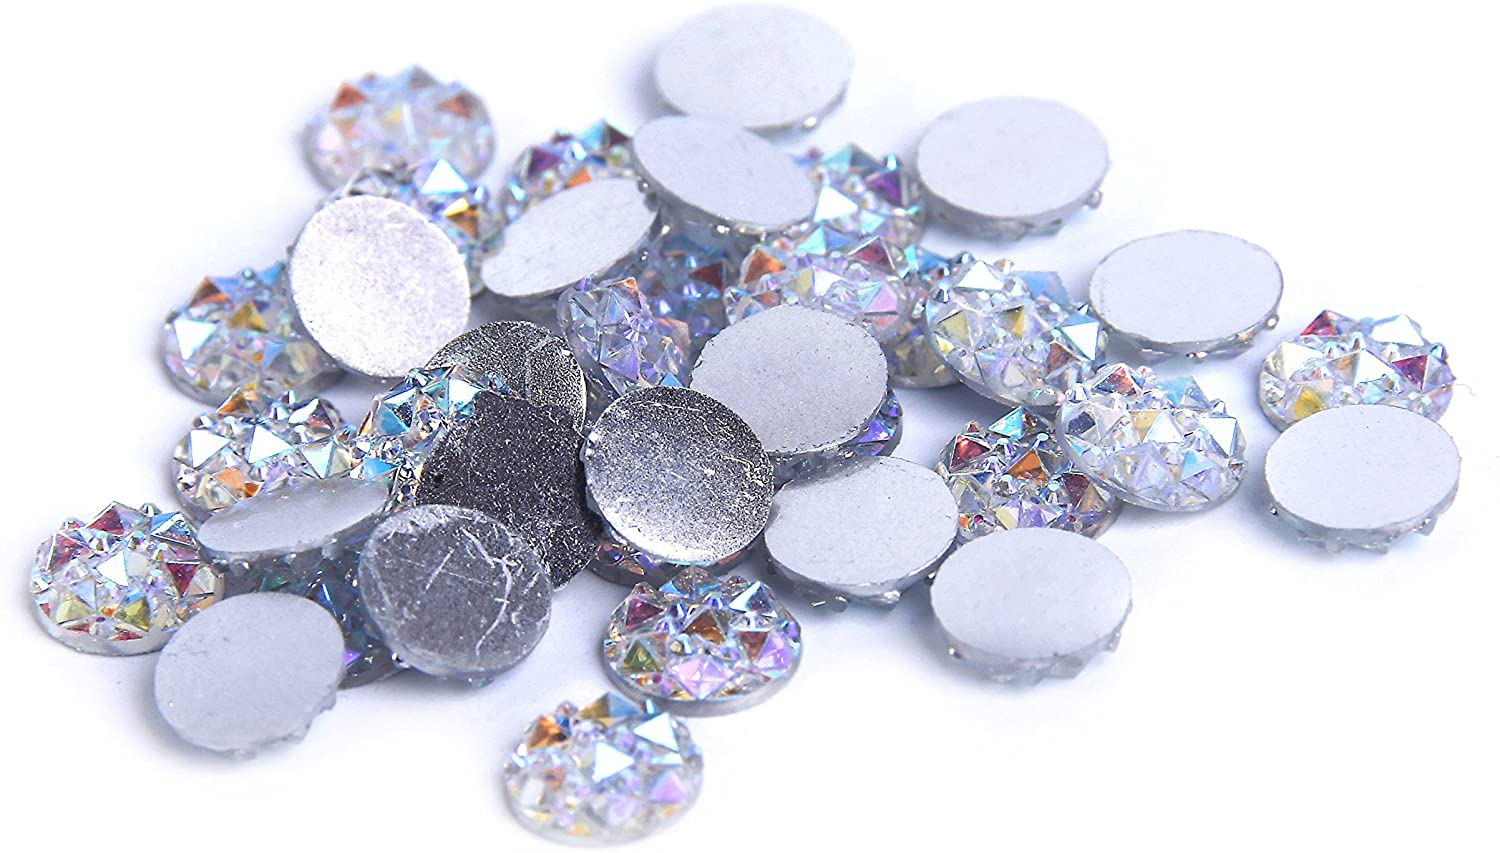 Nizi Jewelry Crystal AB Color Resin Rhinestones Flat Back 8mm 10mm 12mm 14mm Available (12mm 200pcs)